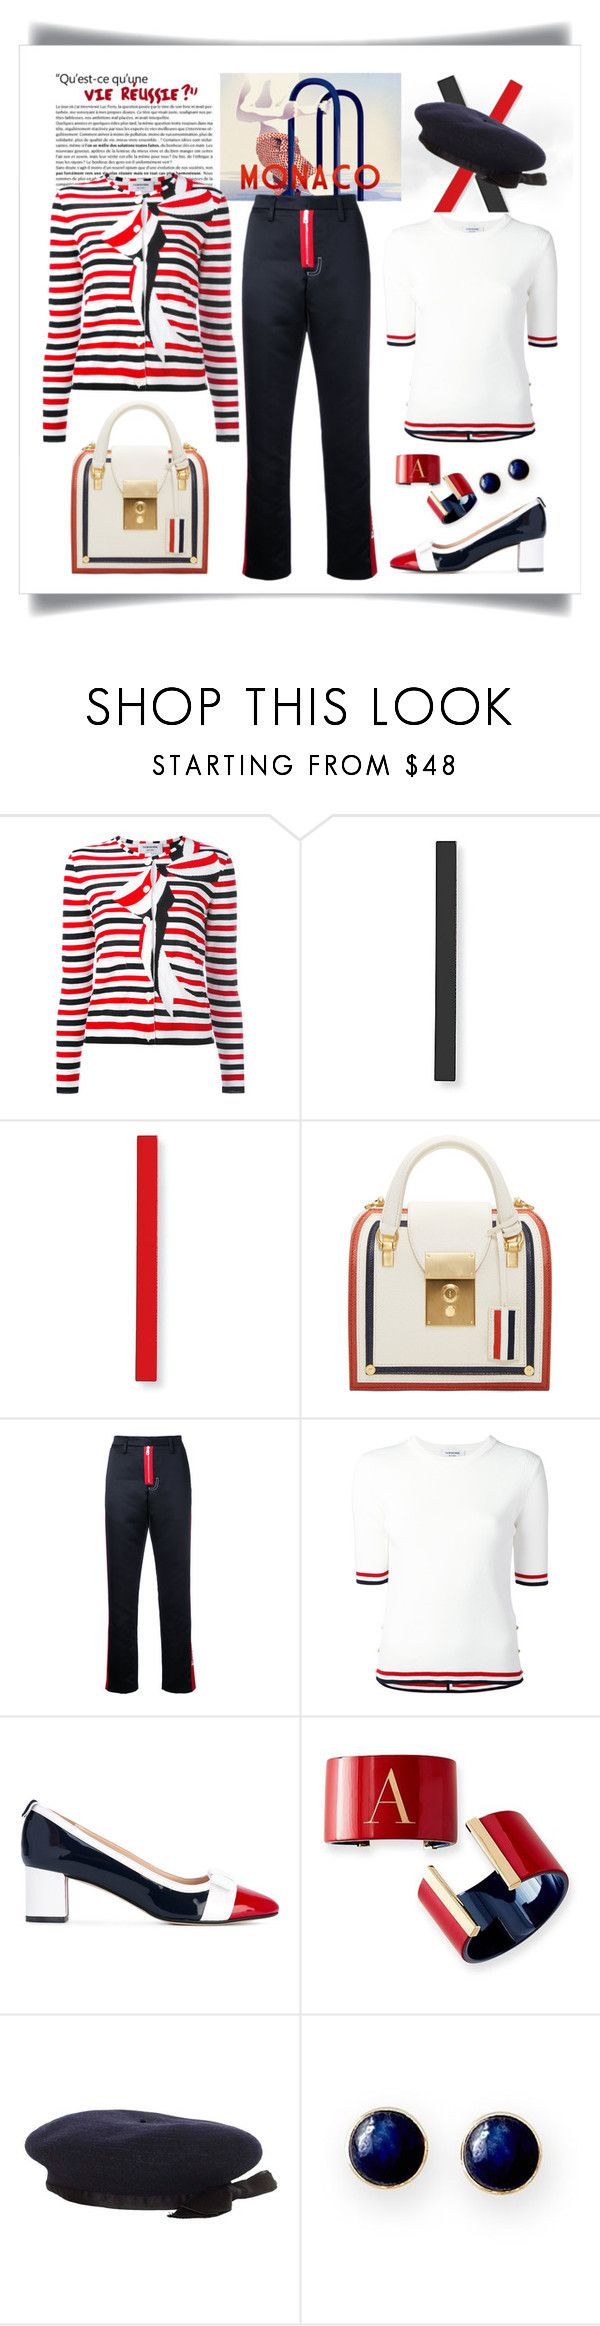 """""""Thom Browne Striped Bow Print Cardigan Look"""" by romaboots-1 ❤ liked on Polyvore featuring Thom Browne, Brognano, Mark & Graham and Chanel"""